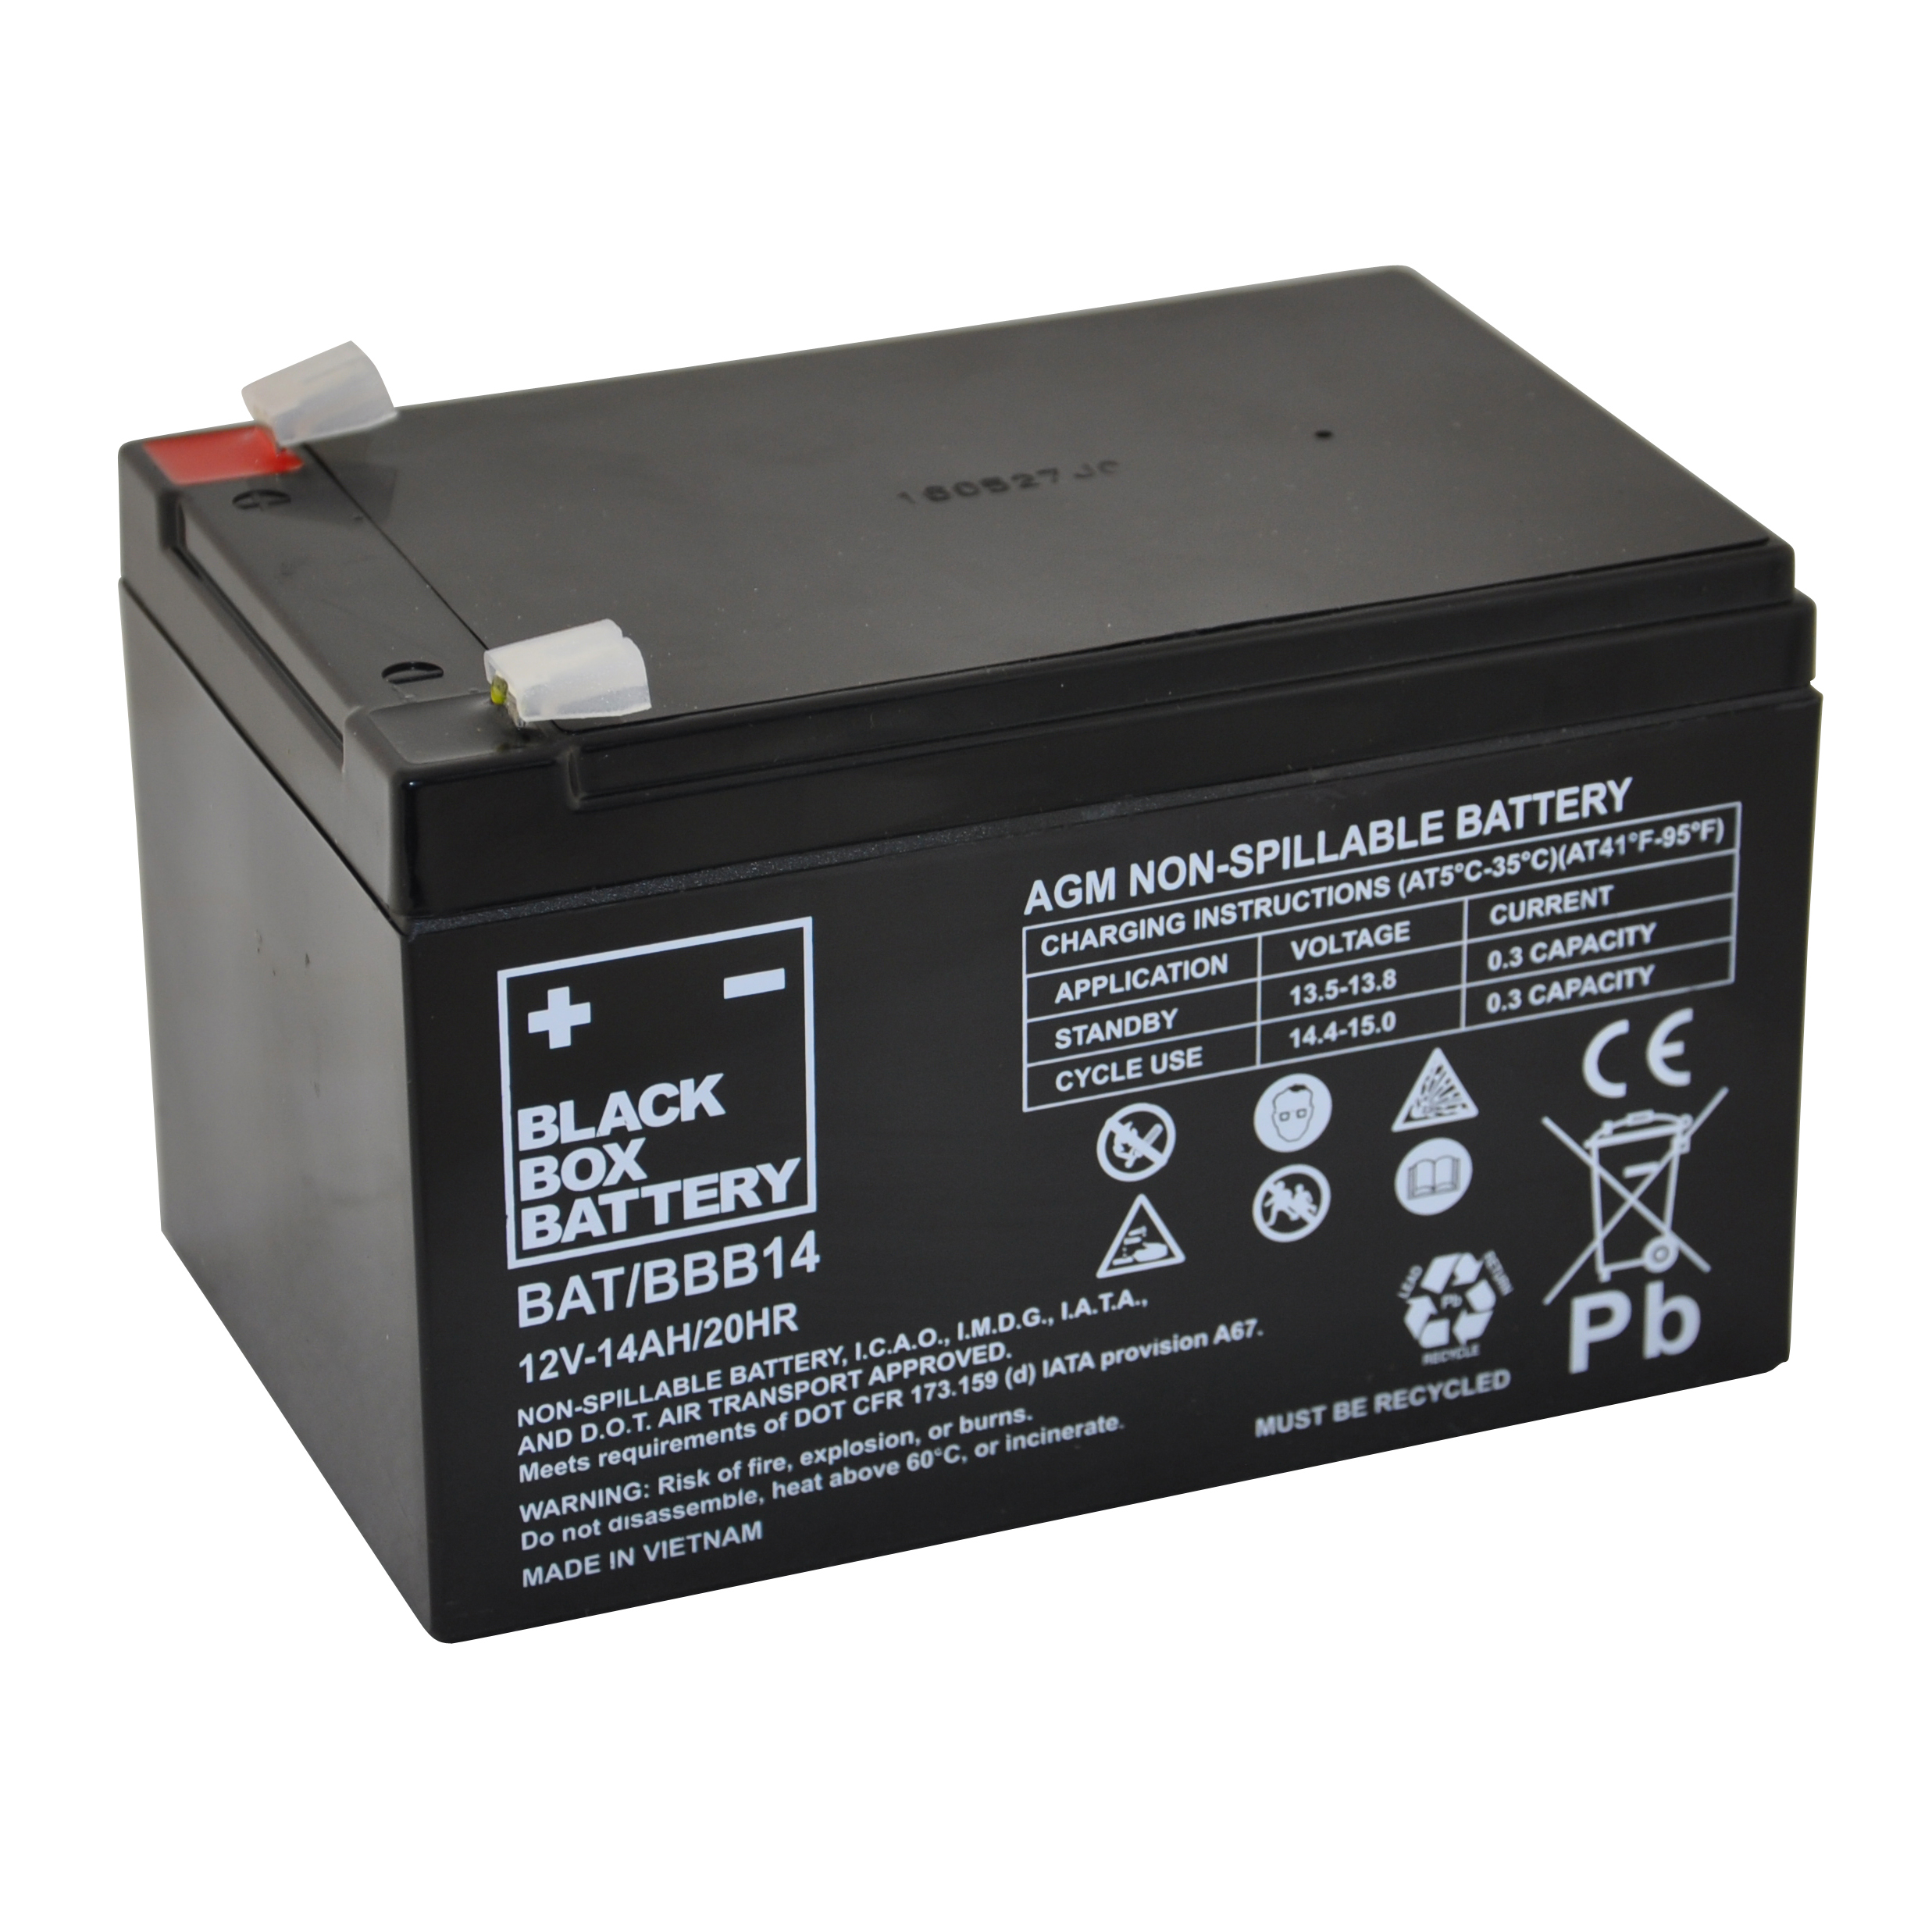 14ah Black Box Agm Battery Flexel Mobility